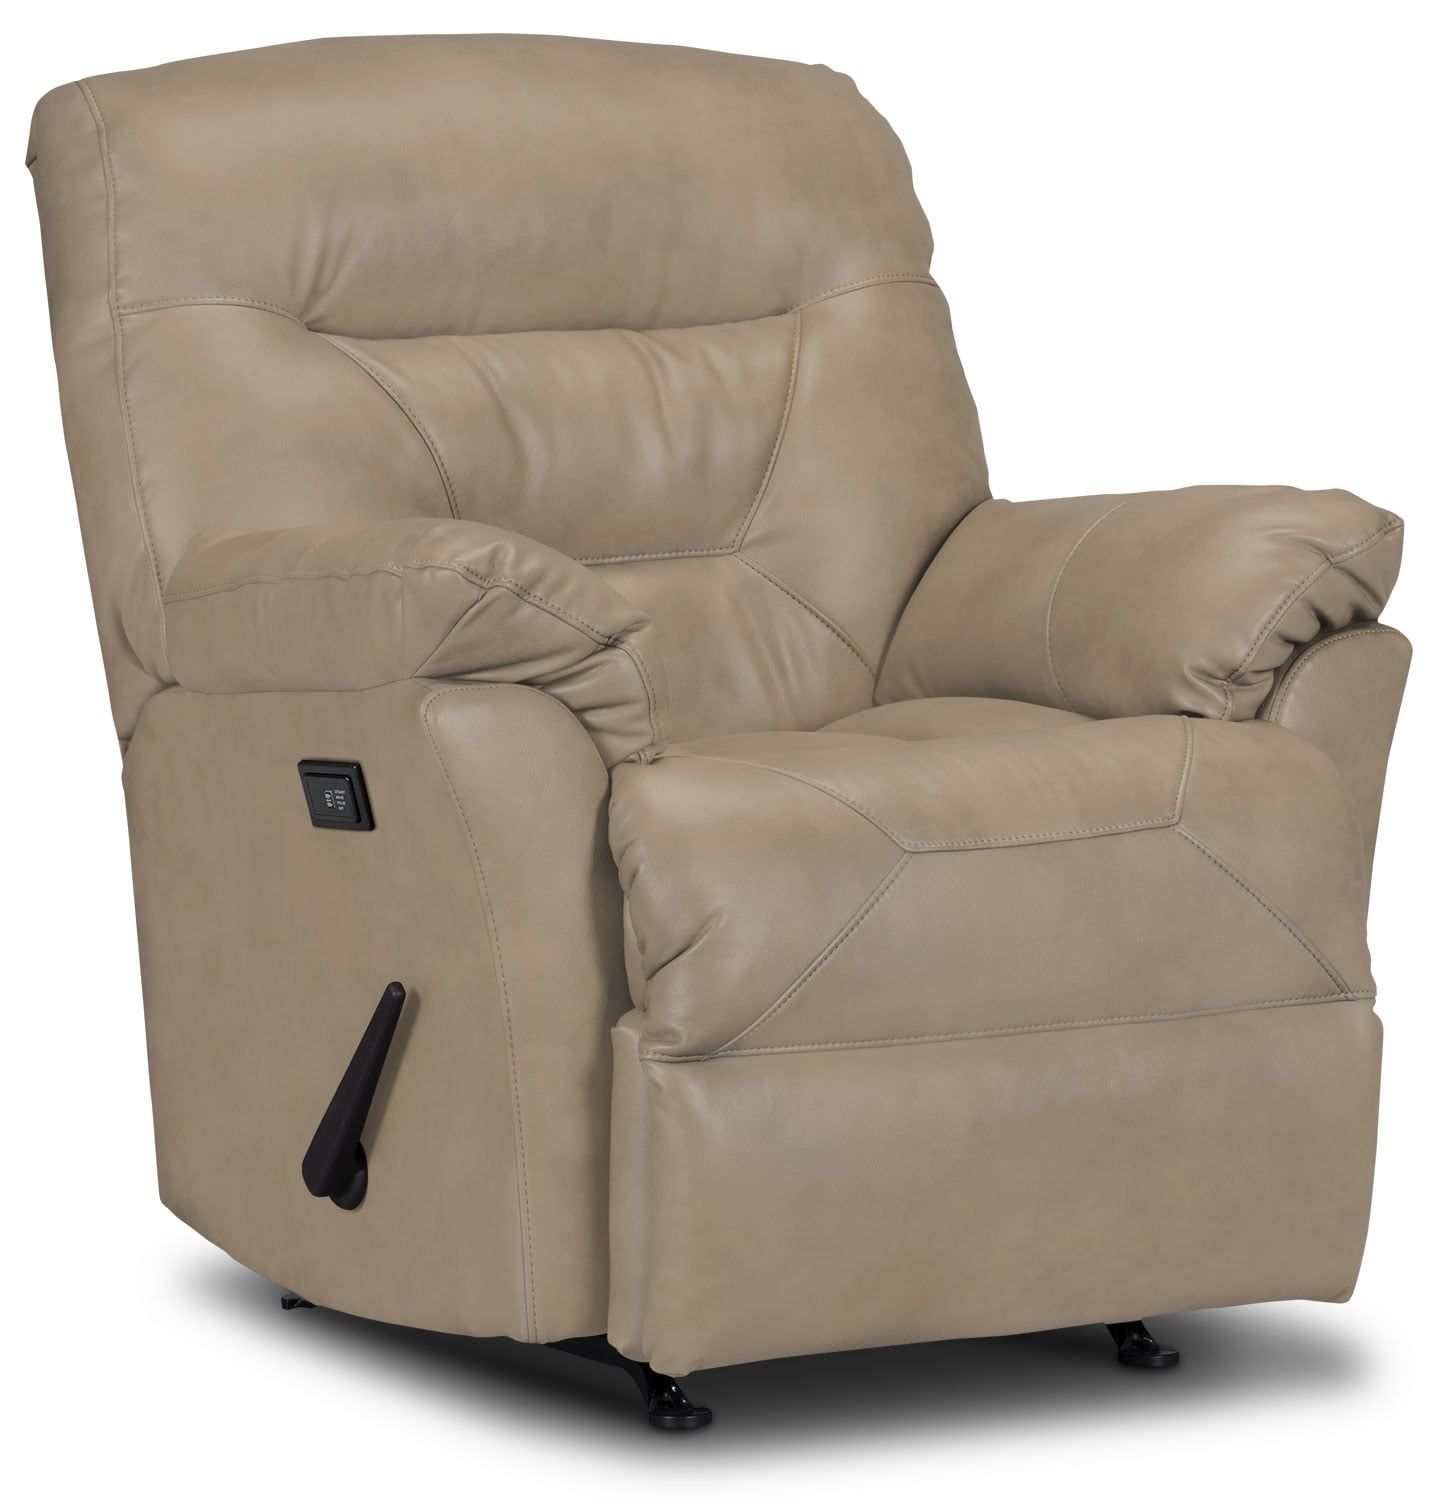 Living Room Furniture - Designed2B Recliner 4579 Genuine Leather Massage Recliner - Putty